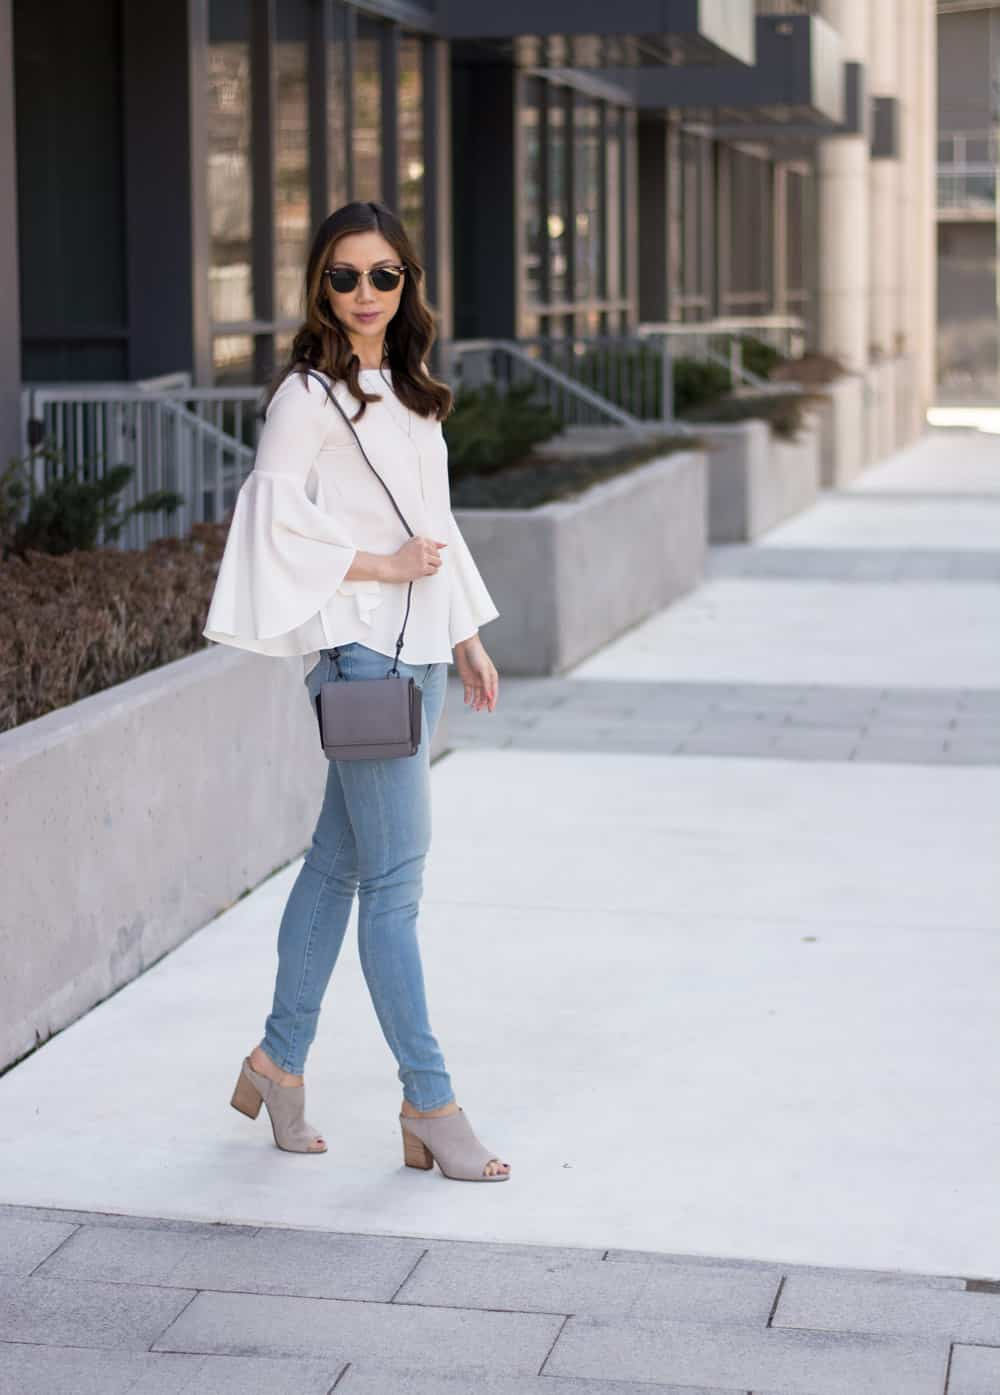 Summer look: Levis Mile High Jeans, bell-sleeve top, and Kendall + Kylie bag